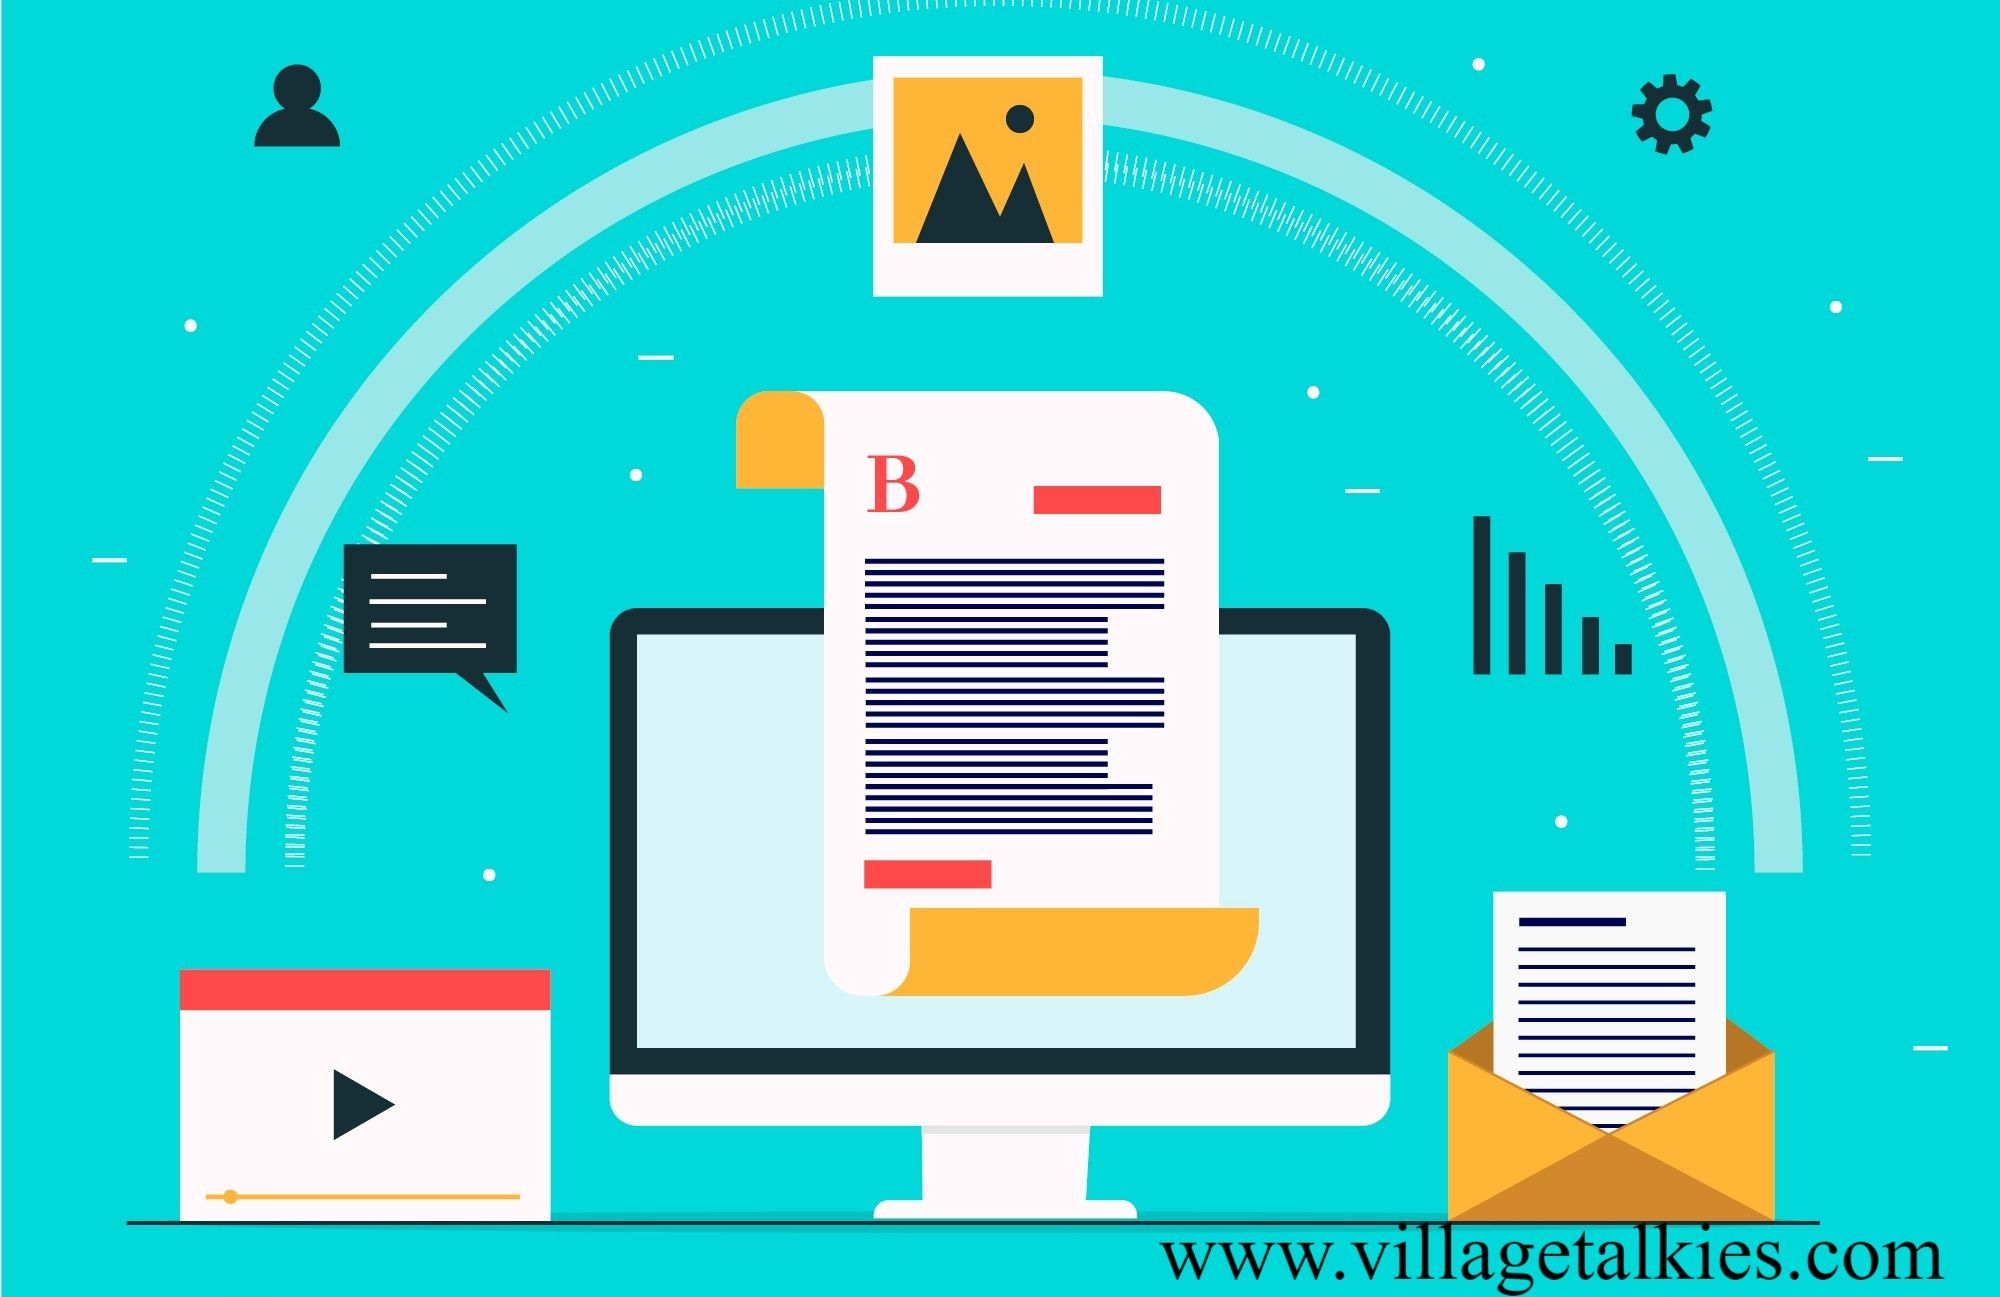 Explainervideocompanyinbangalore Explainervideocompanyinchennai Animationcompanyinbangalorevillage Talkies A Top Quality Professional Corpo In 2020 Animated Video Maker Marketing Marketing Training